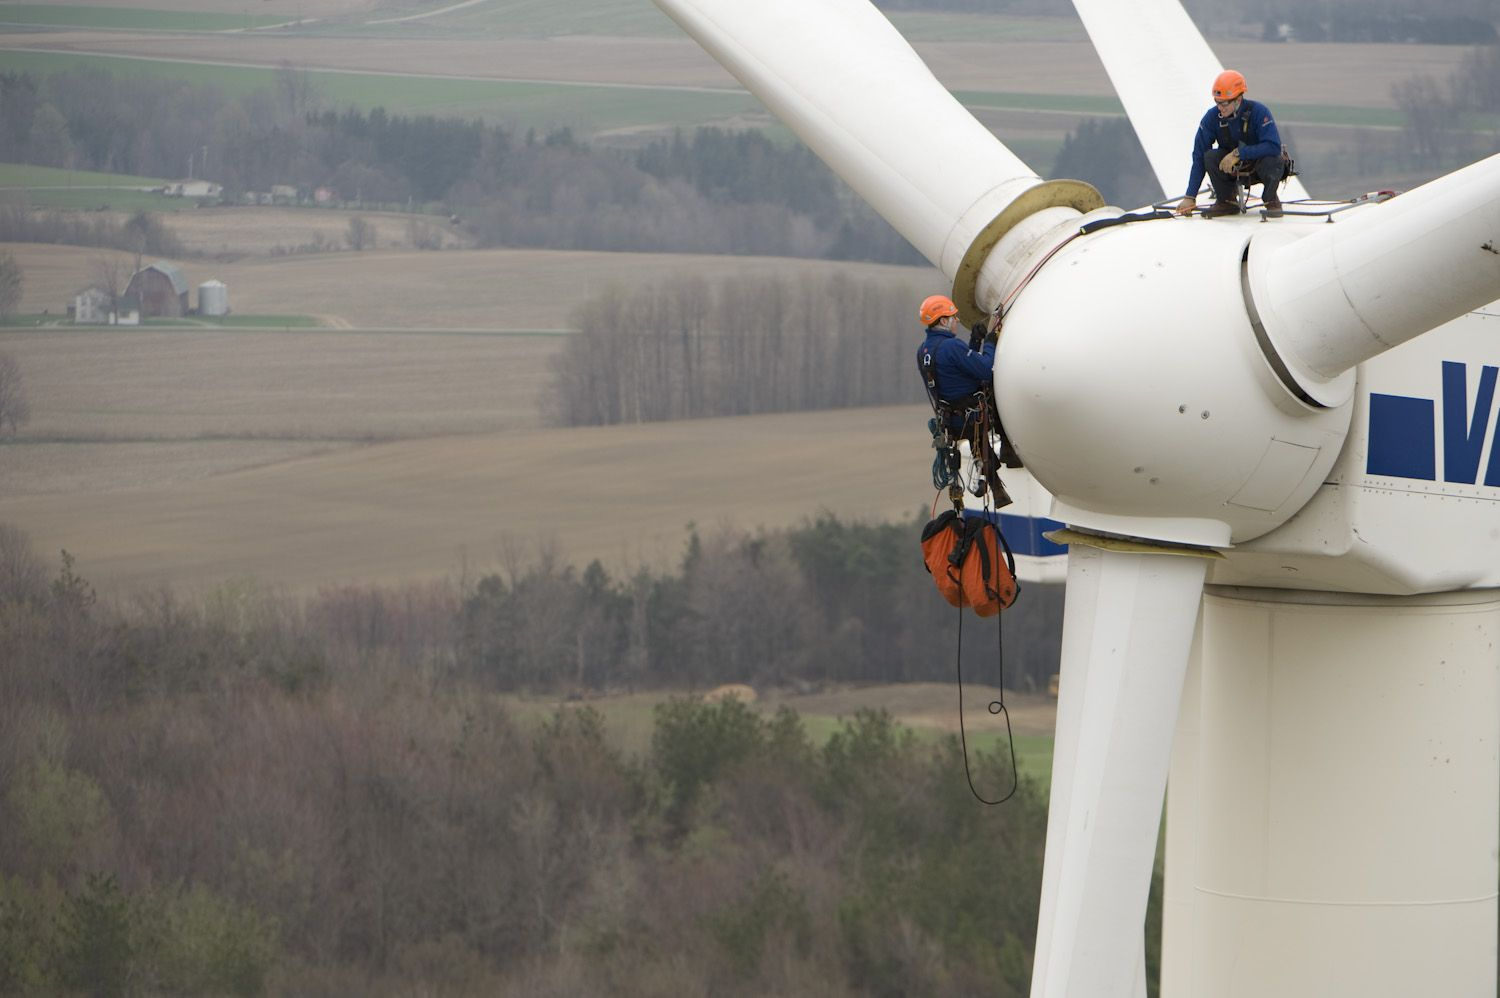 17 Best images about Wind Turbine Rope Access on Pinterest ...